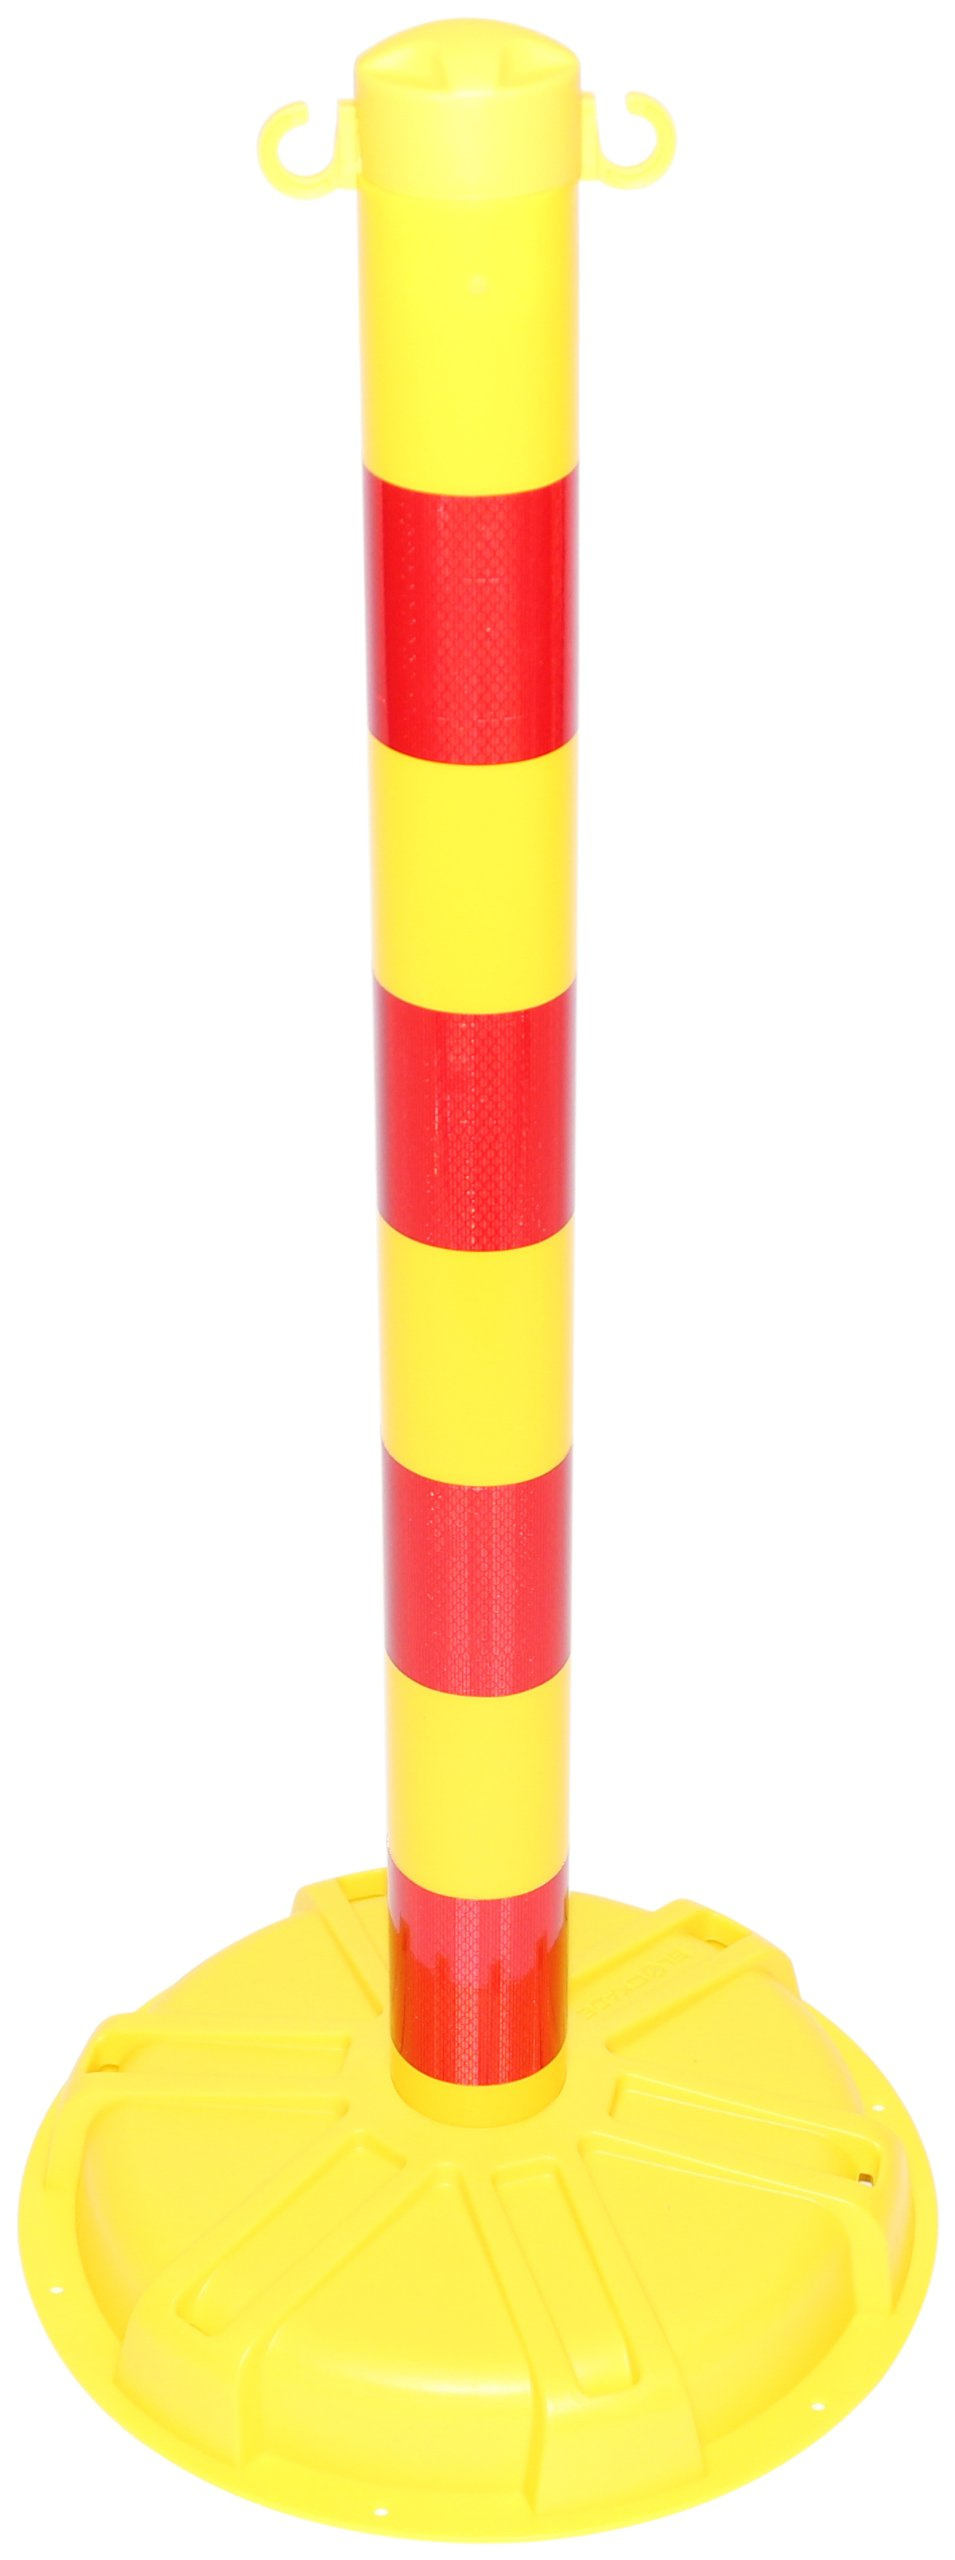 Accuform PRC447YLRR BLOCKADE Stanchion Post, 38'' Height x 3'' Diameter Post x 16'' Width Base, High-Density Polyethylene, Yellow with Reflective Red Stripe